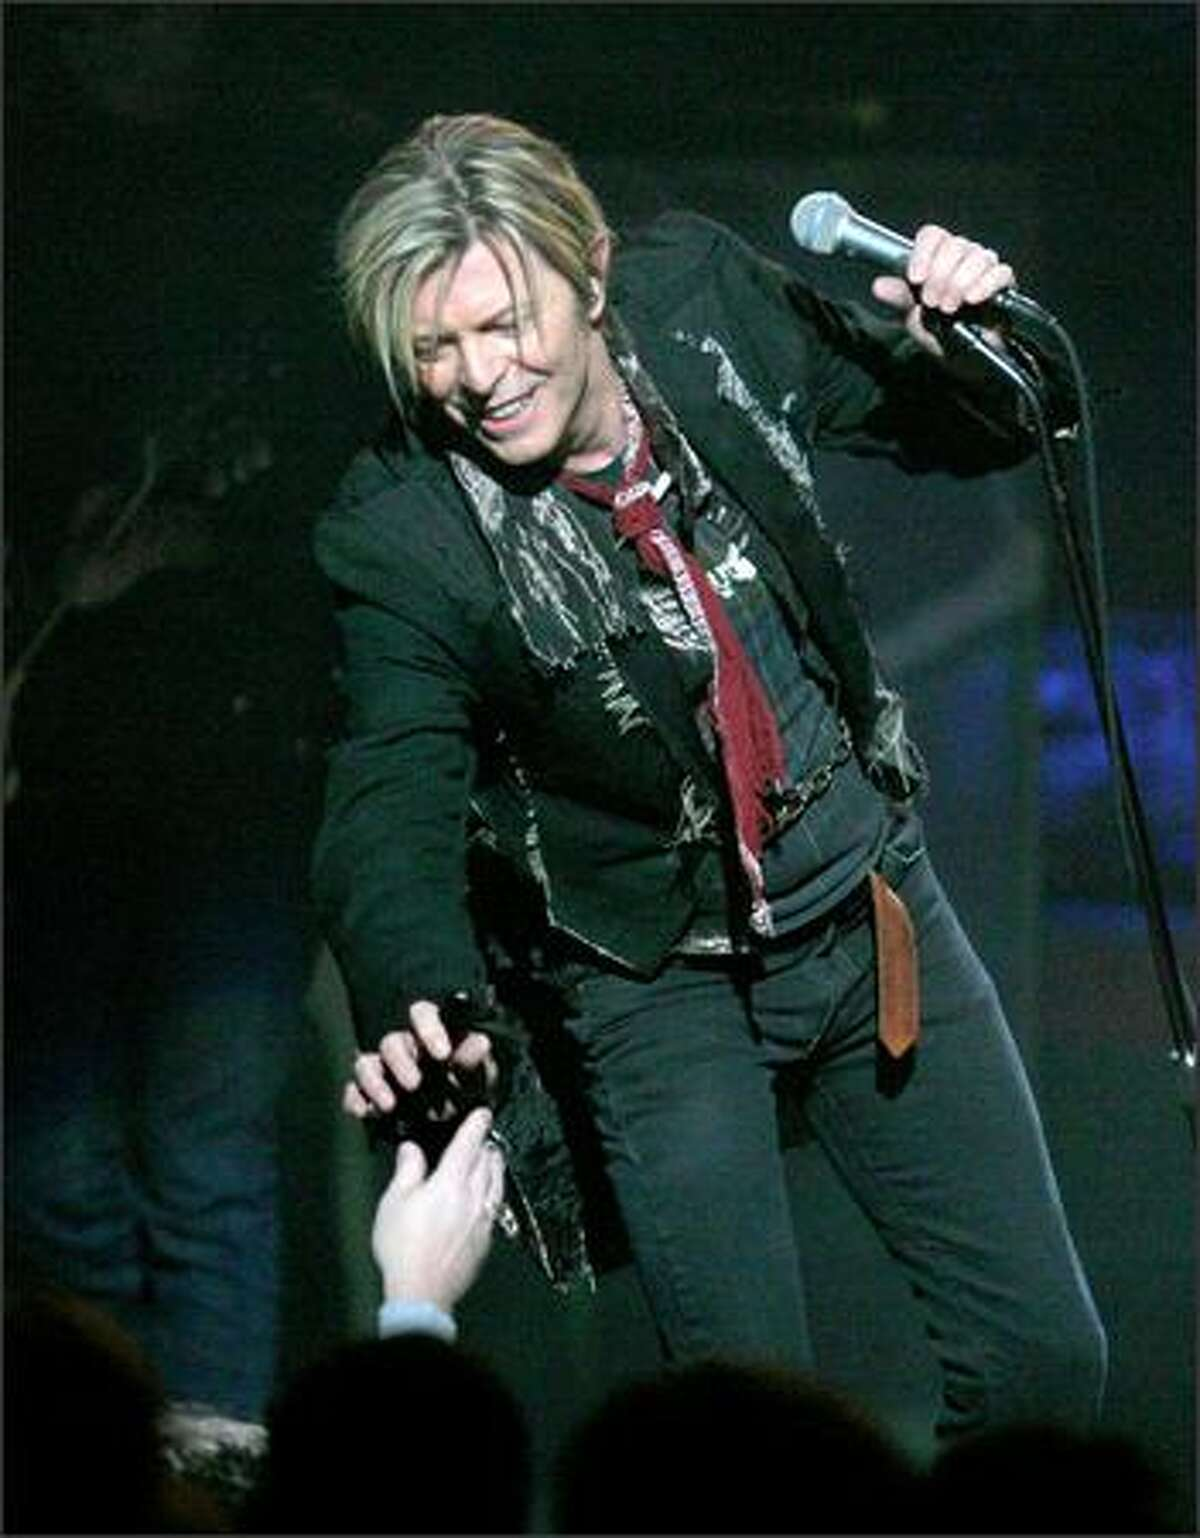 David Bowie borrows sunglasses from a fan because of the bright spotlights at the Paramount during his performance.